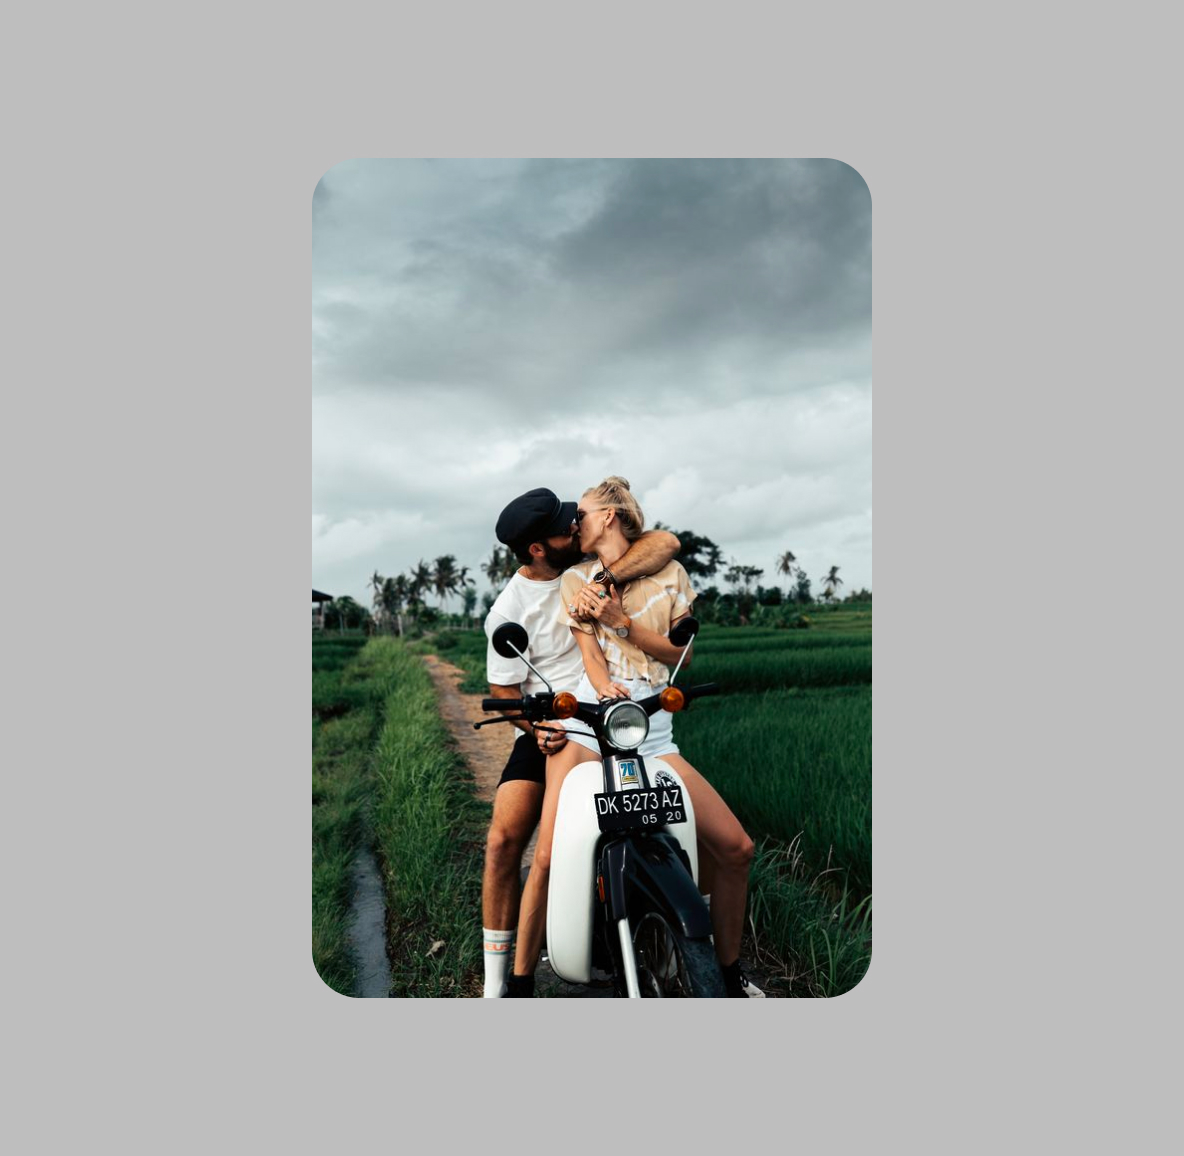 Couple embracing on a motorcycle